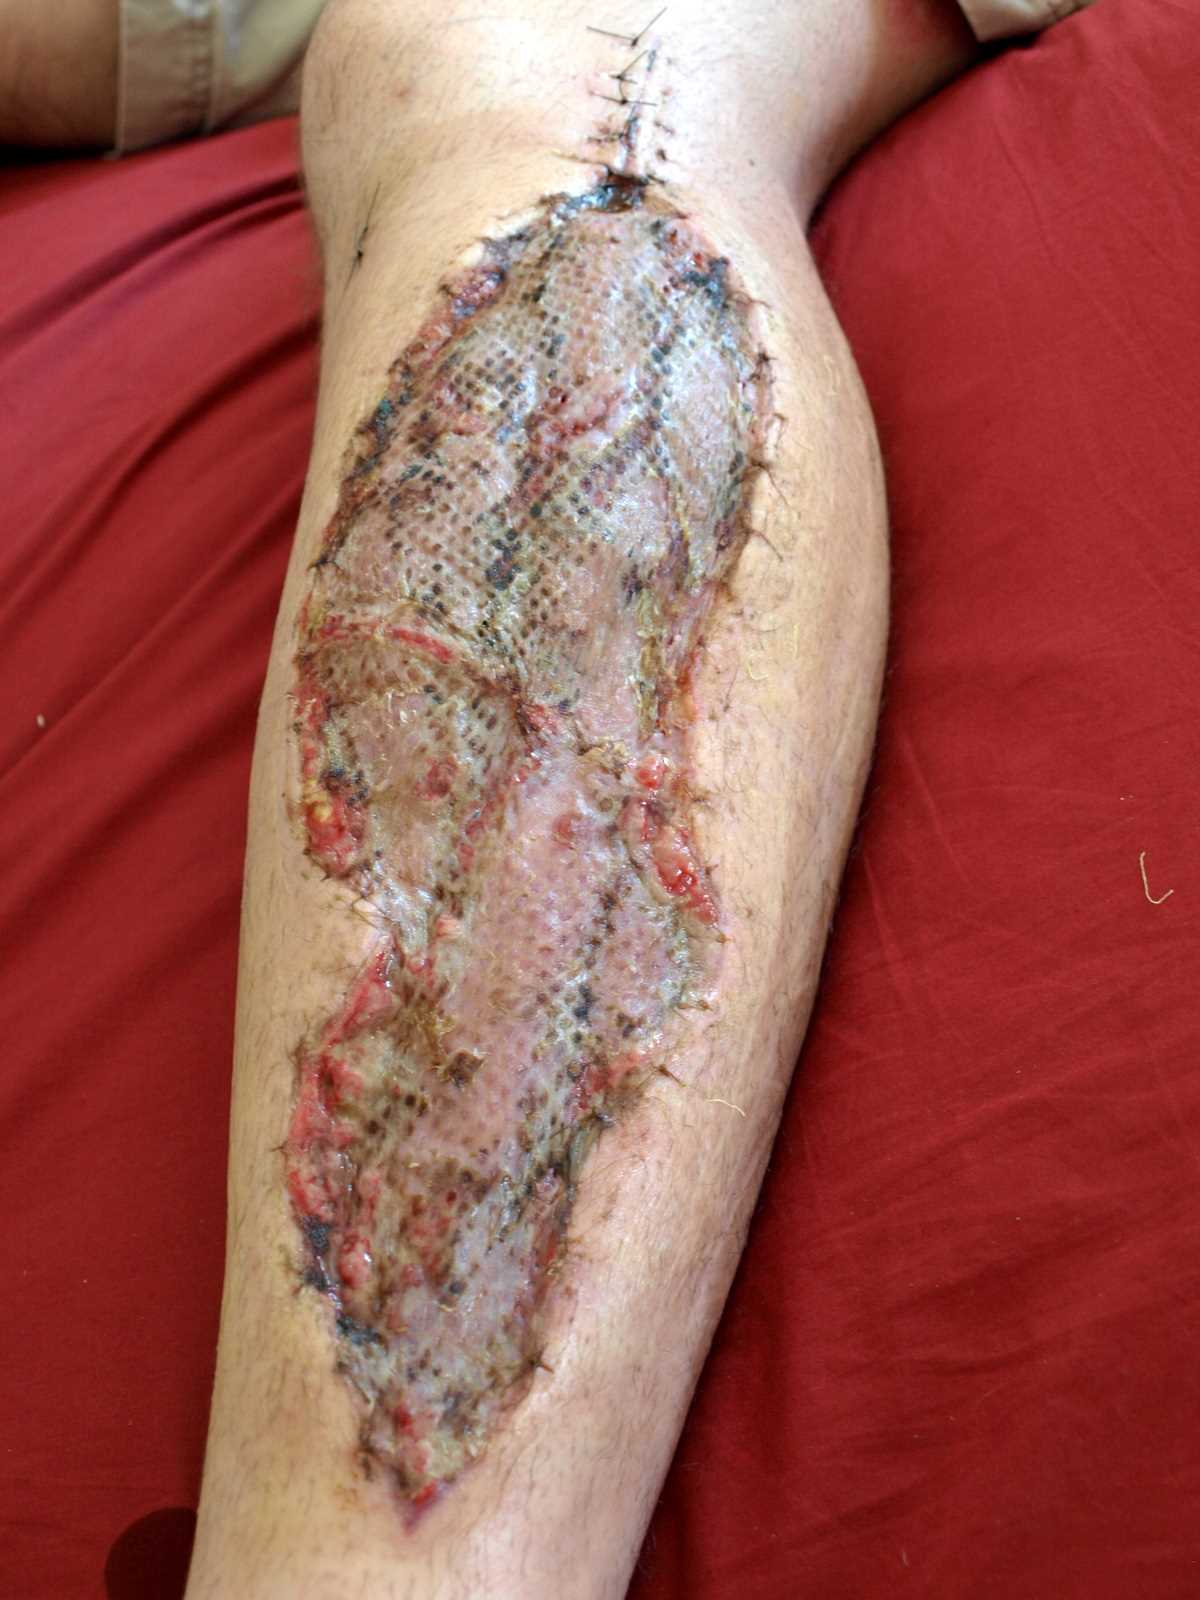 A fasciotomy one week after a skin graft had been applied. Wound was covered with a skin graft once pressure was relieved